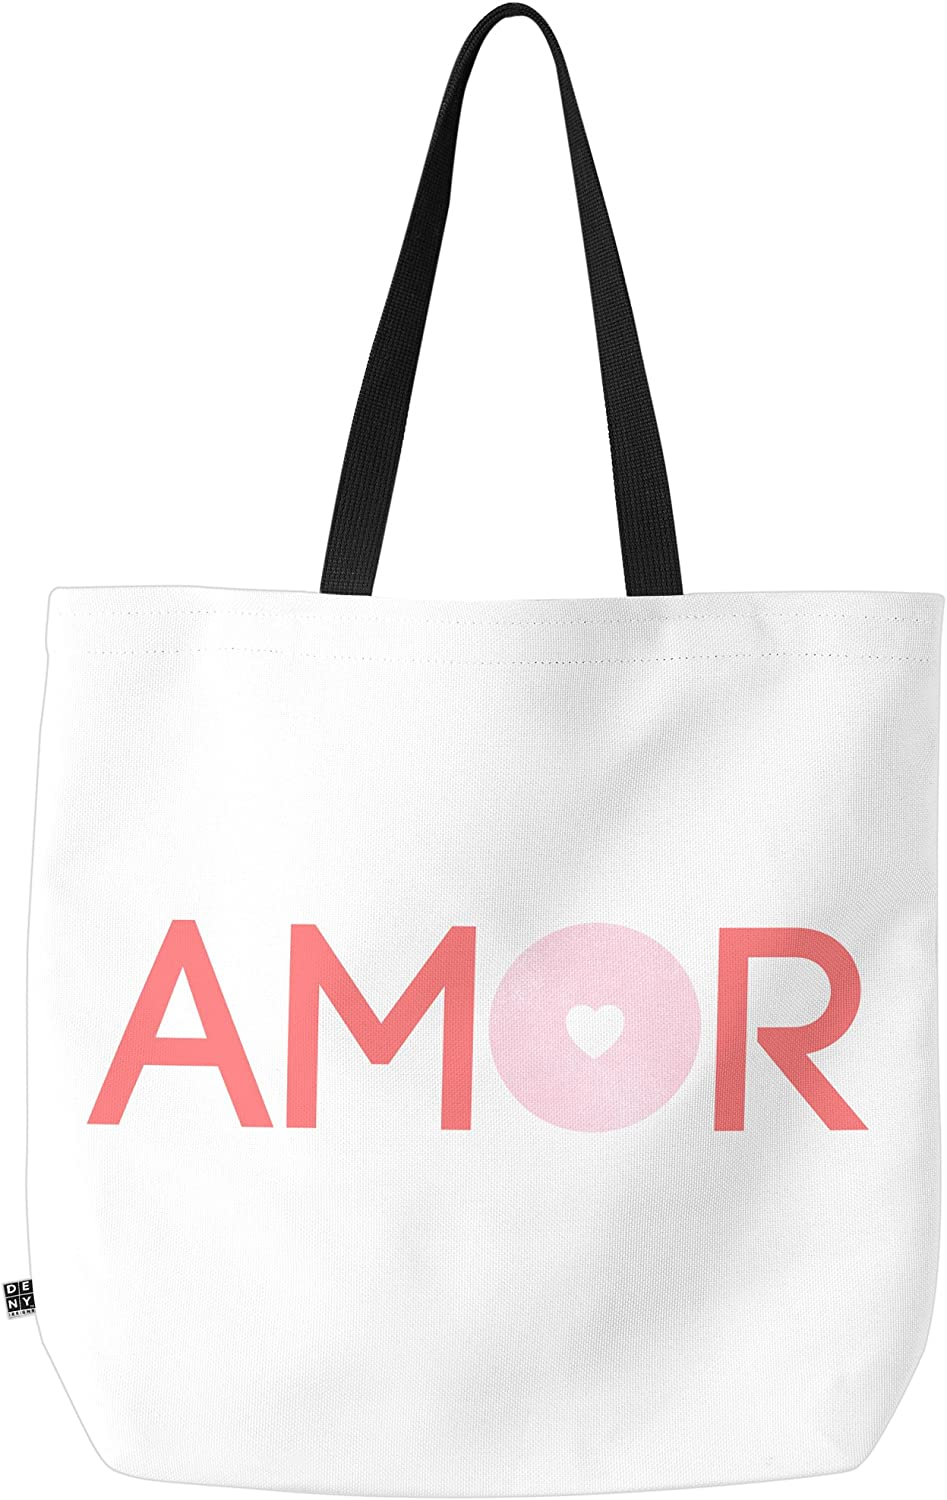 Deny Designs Amor & More Carry All Tote Bag, 18  x 16